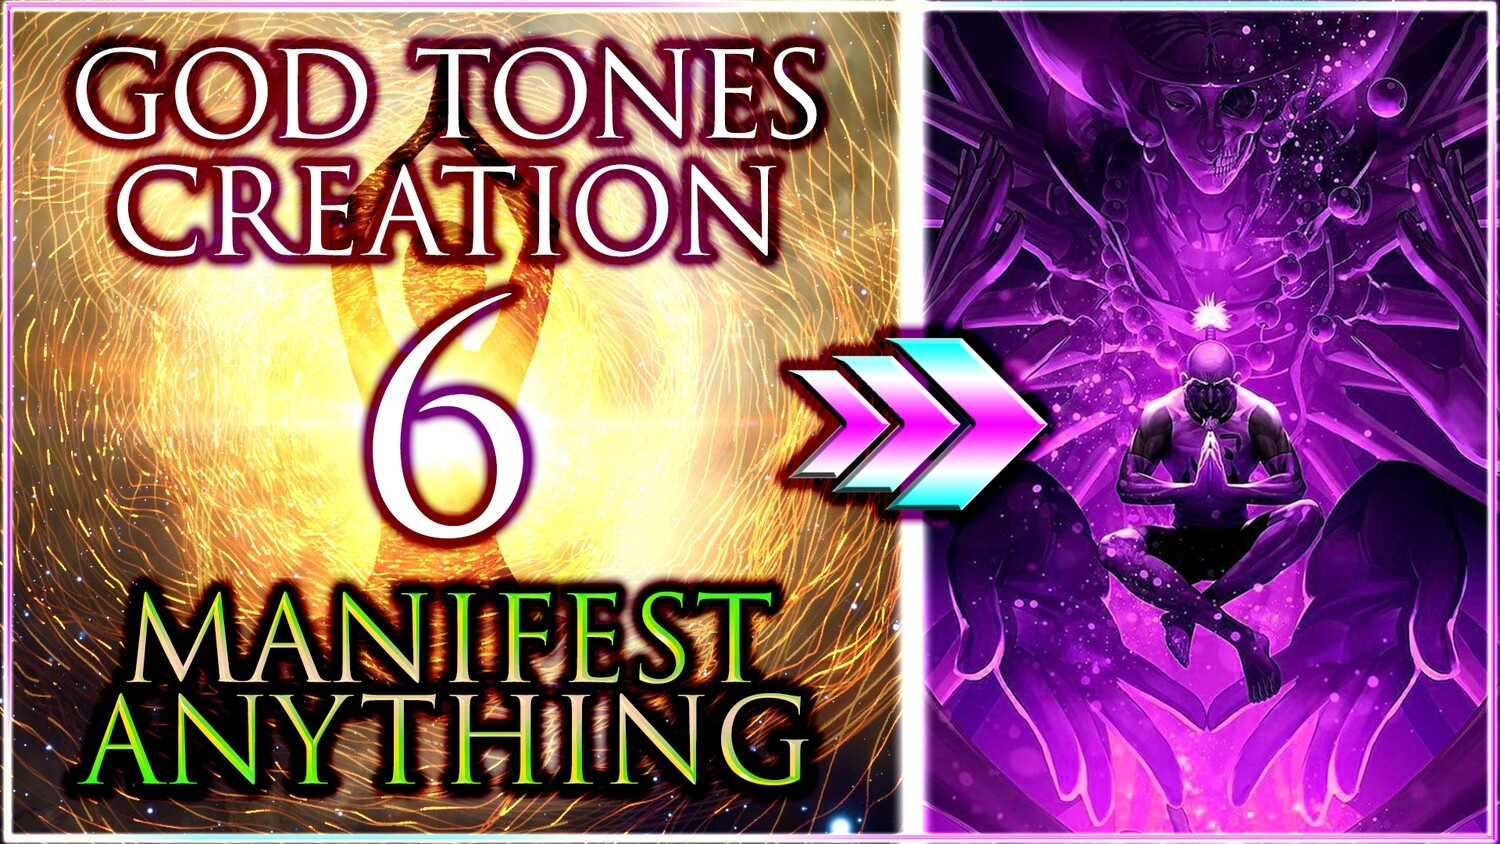 YOU CAN MANIFEST Anything You WANT ꩜ 6 GOD Solfeggio TONES of CREATION ❖ 430 65 Hz Miracle + Drums